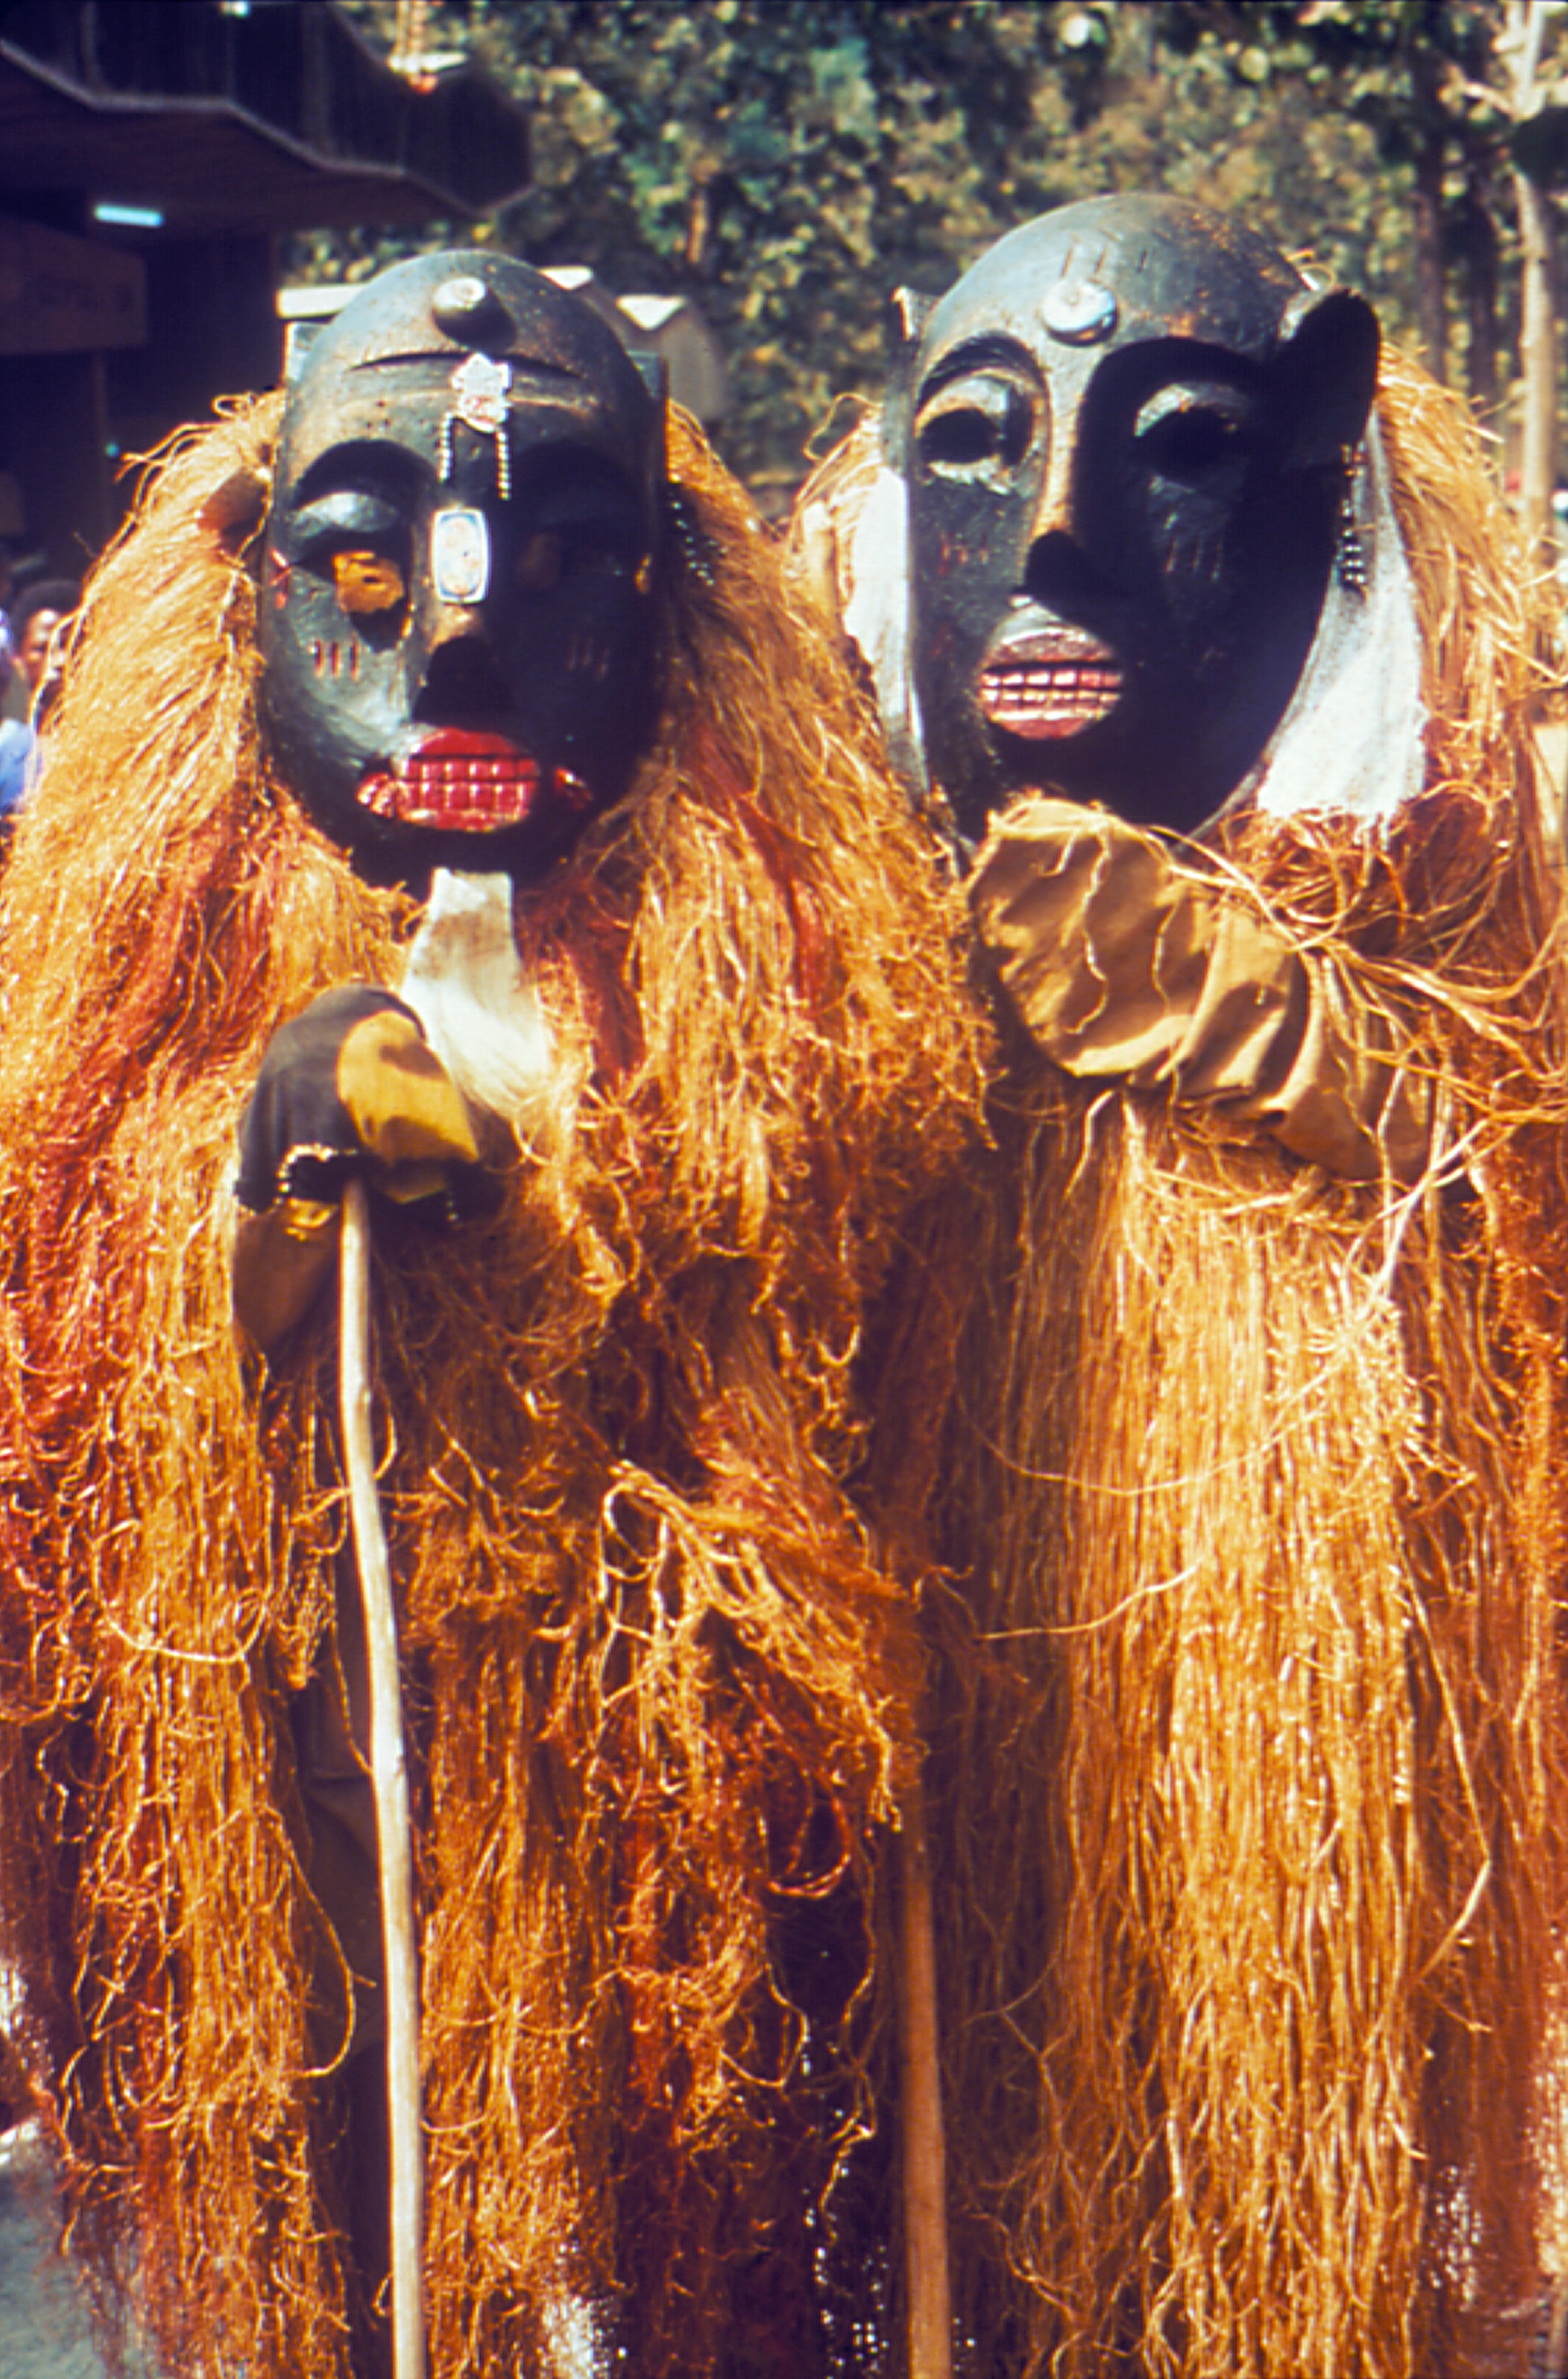 http://upload.wikimedia.org/wikipedia/commons/a/aa/Lassa_witch_doctors.jpg